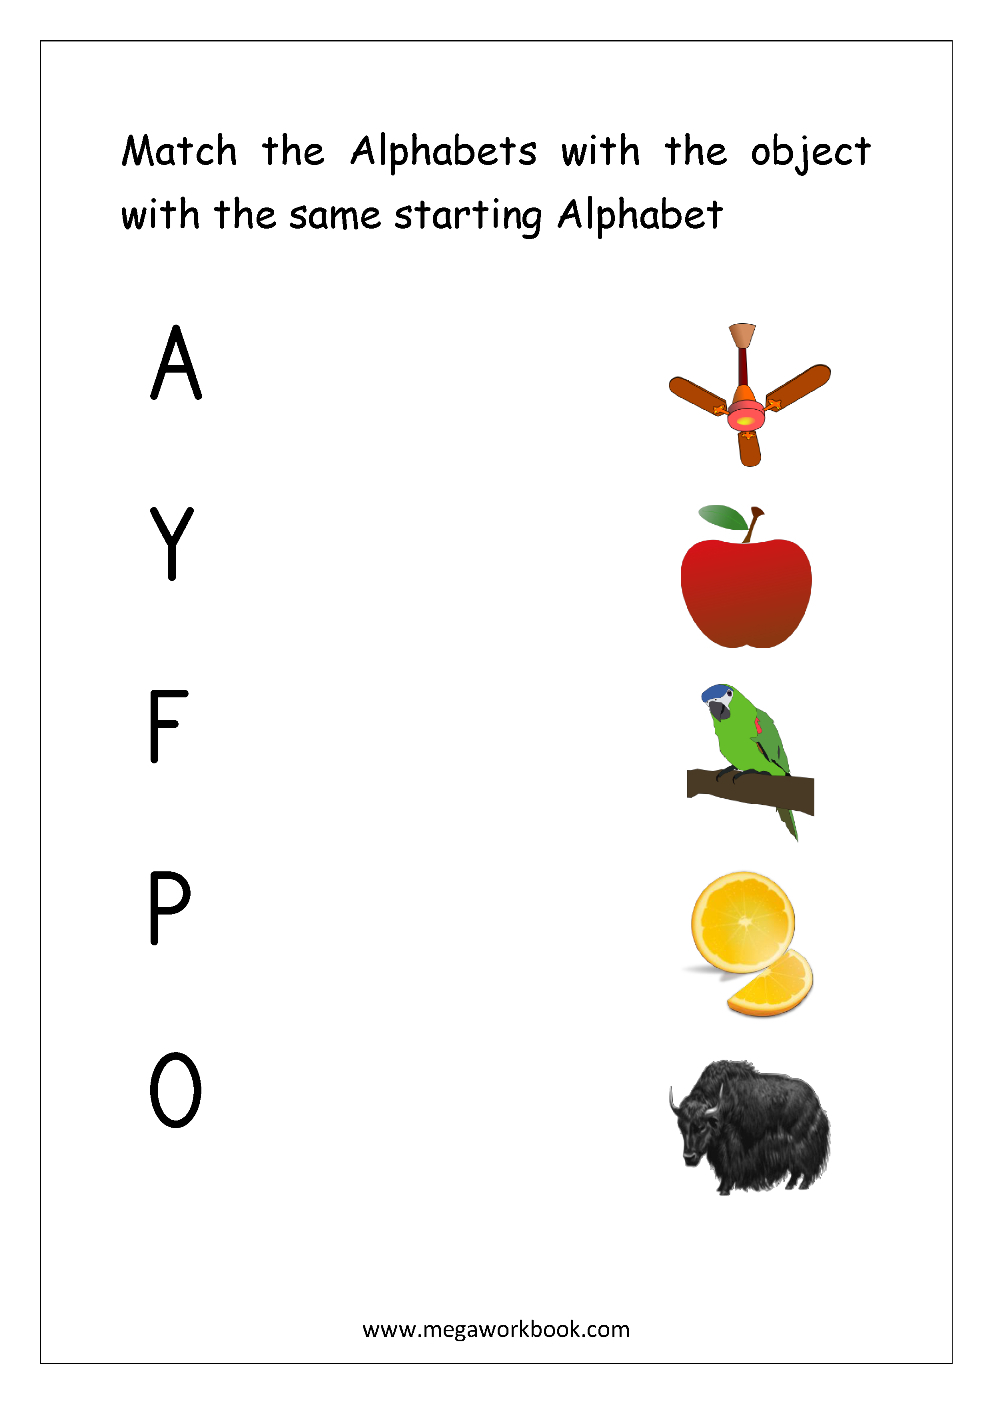 Letter Matching Worksheet - Match Object With The Starting intended for Alphabet Matching Worksheets For Kindergarten